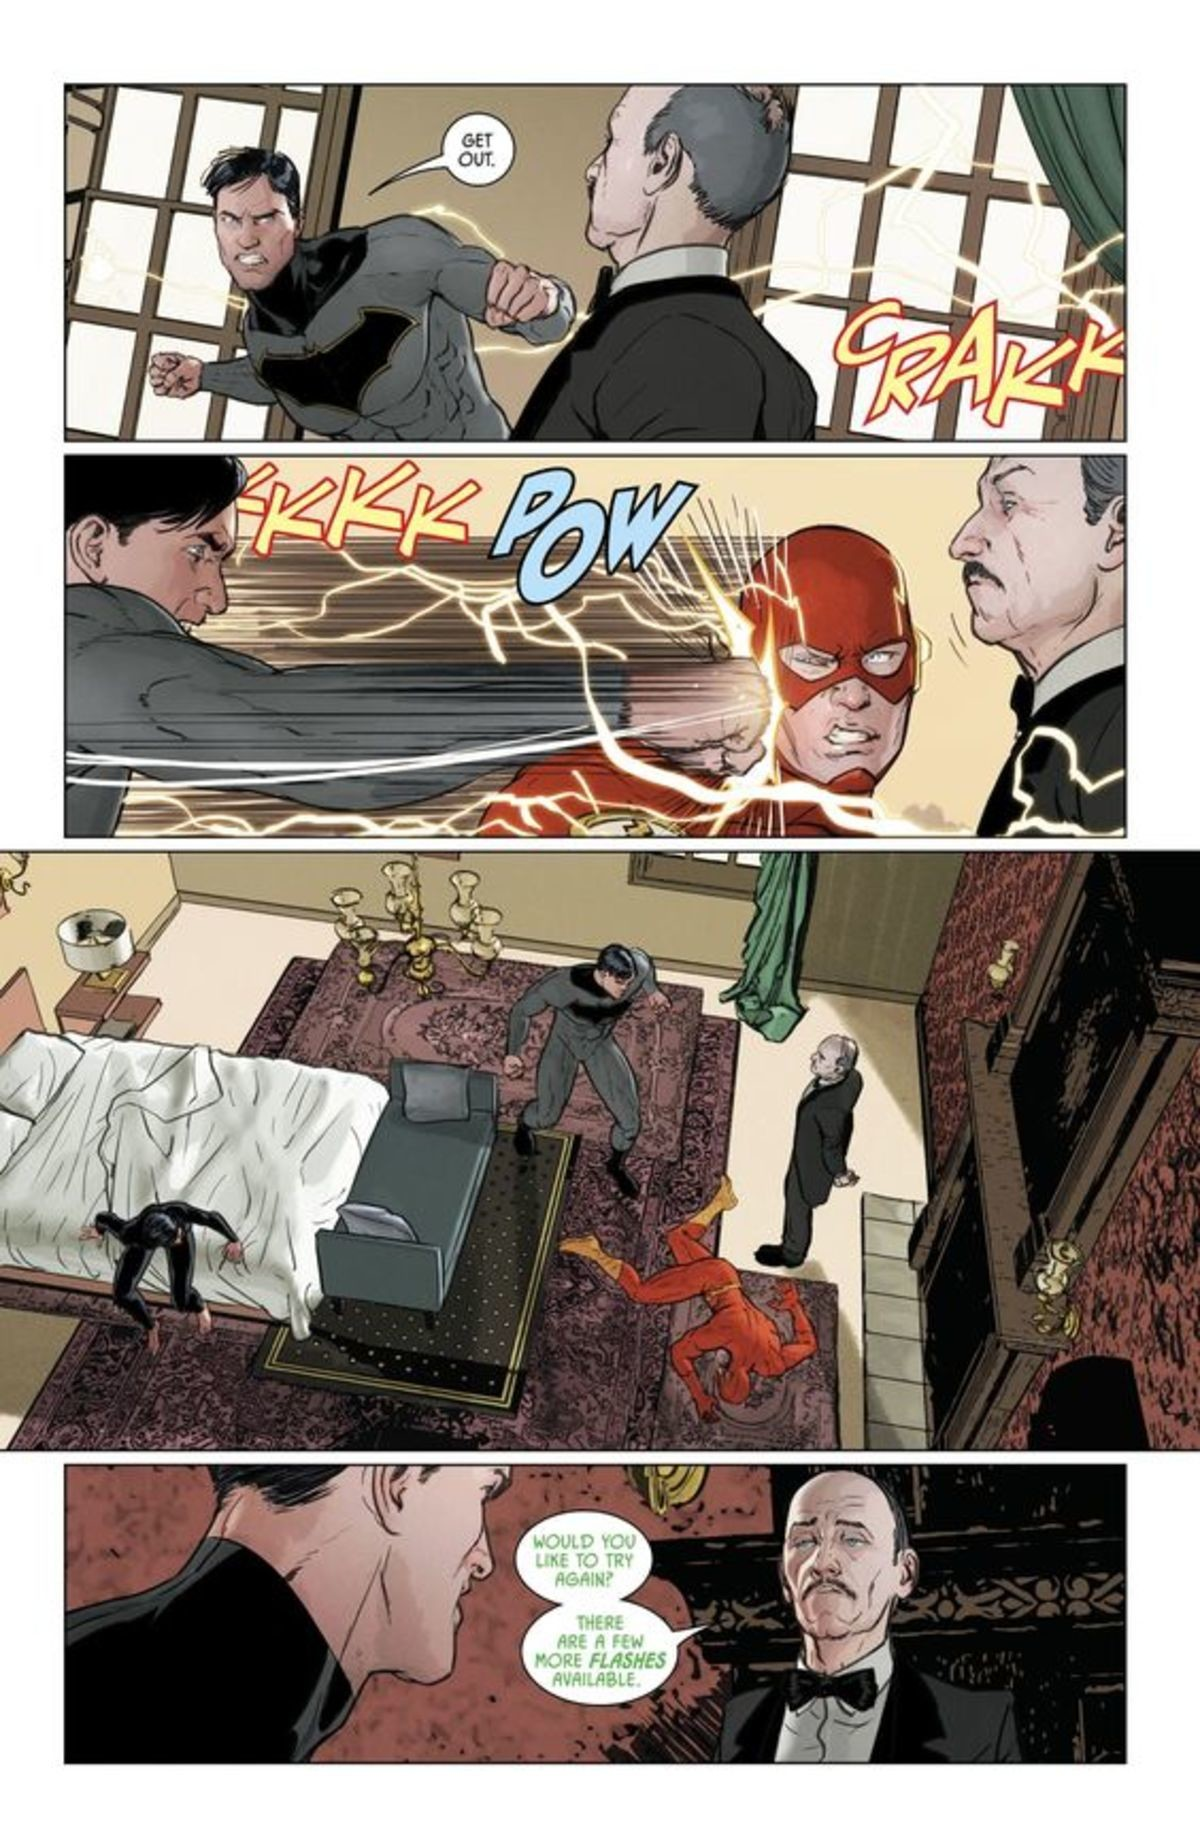 nostalgic inquisitive Pig. Barry is too much of a good person, that's what's going to get him killed in every timeline/universe... Why would Bruce do that? It's because of Poison Ivy